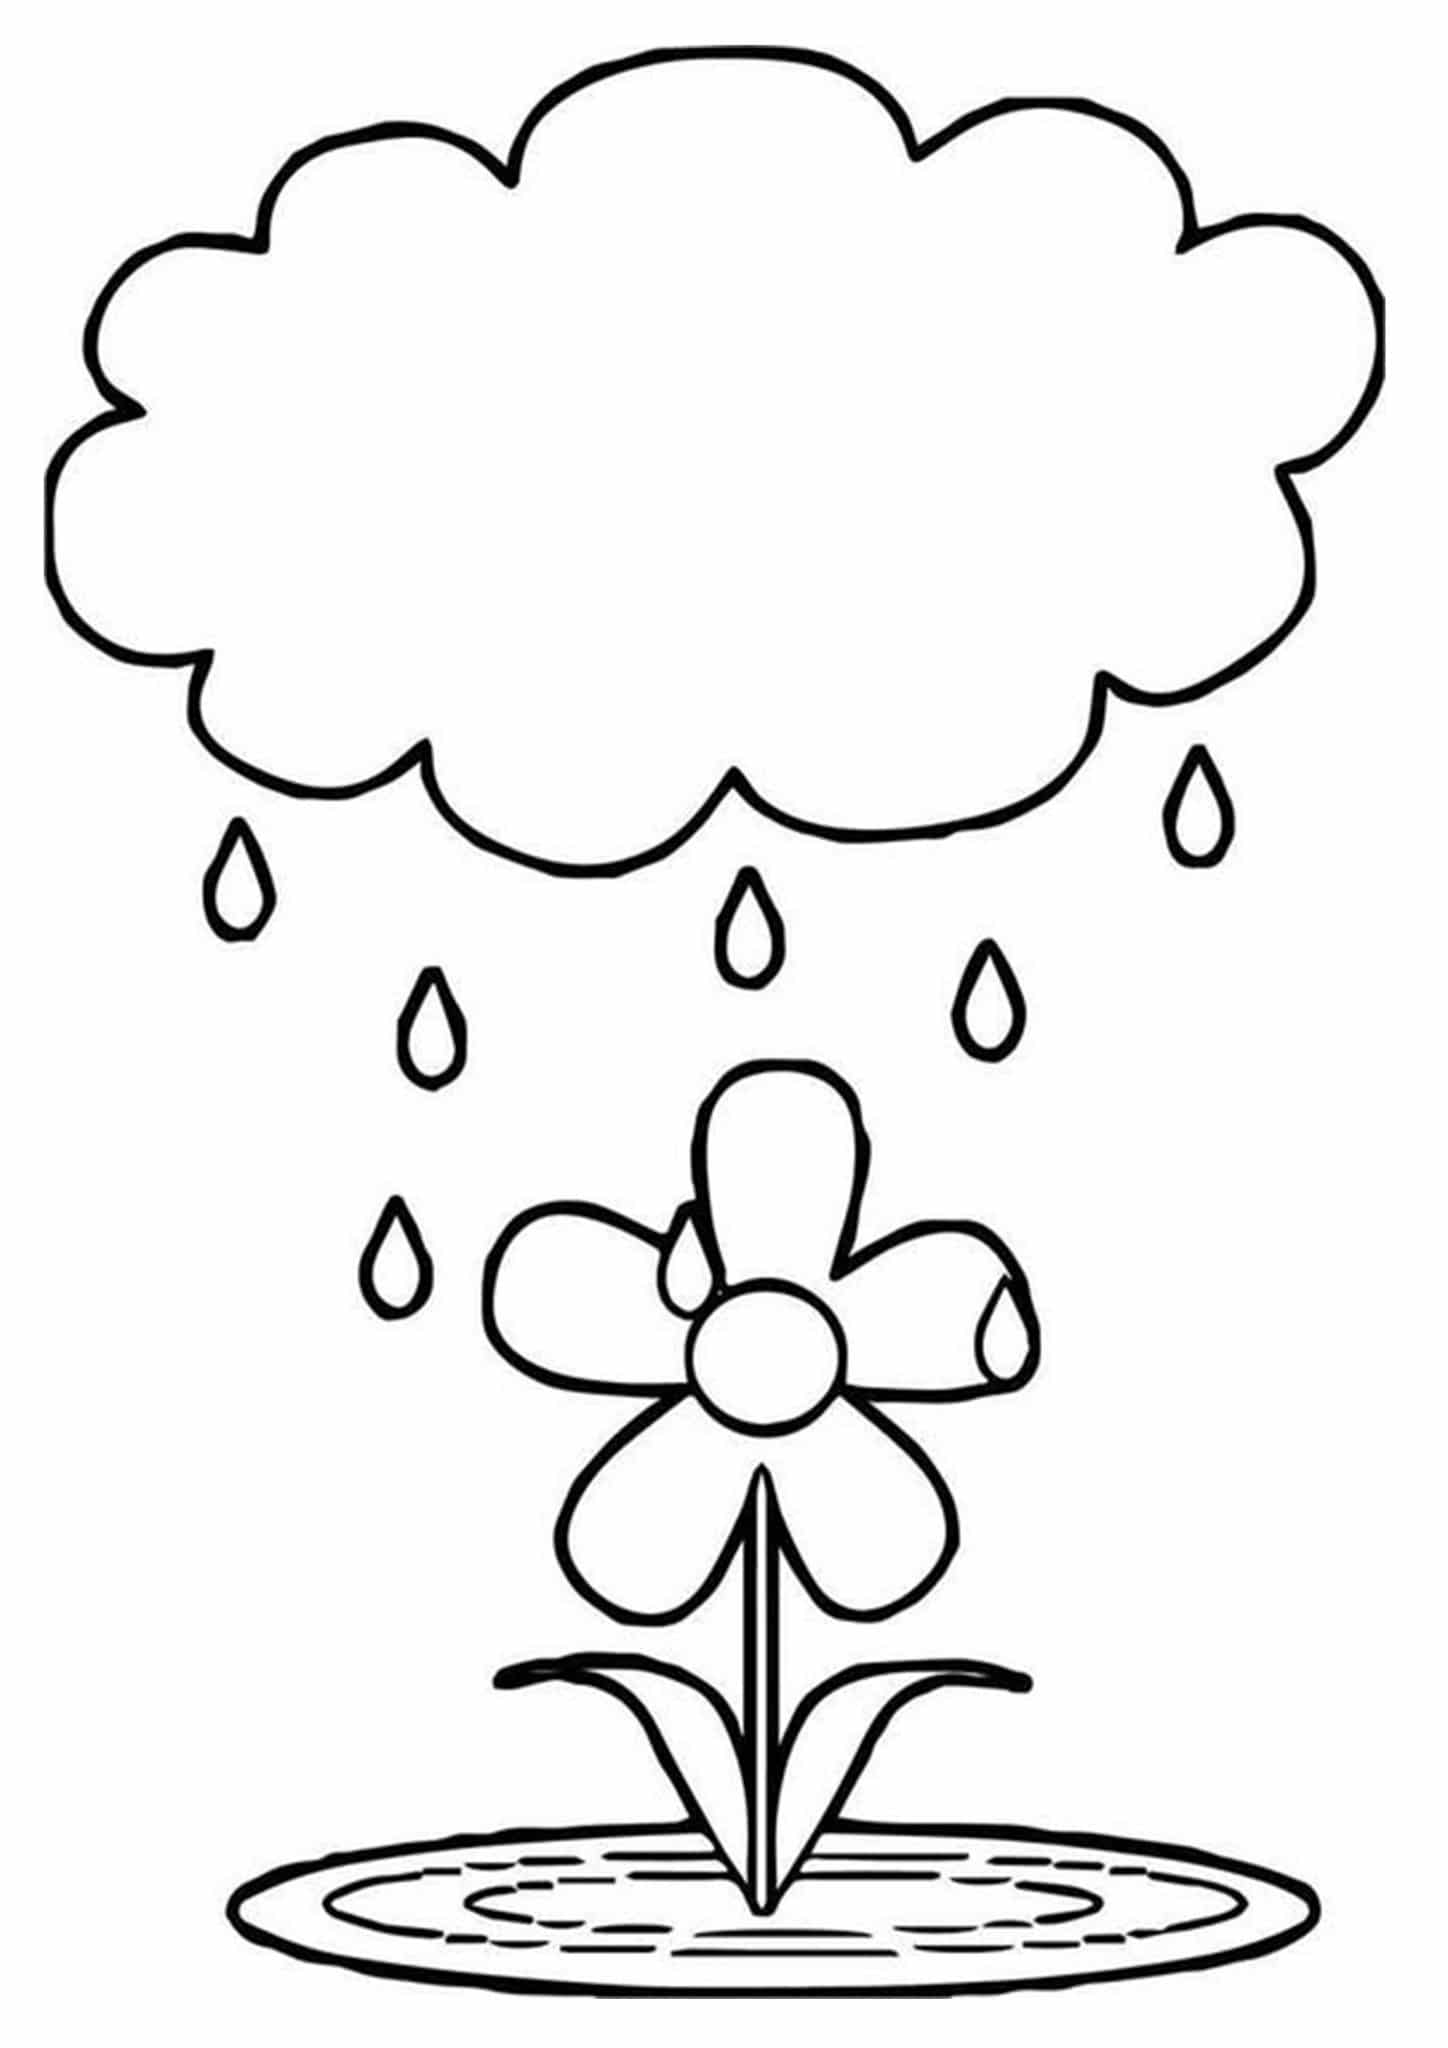 easy flower coloring pages flower mandala coloring pages coloringrocks easy pages coloring flower